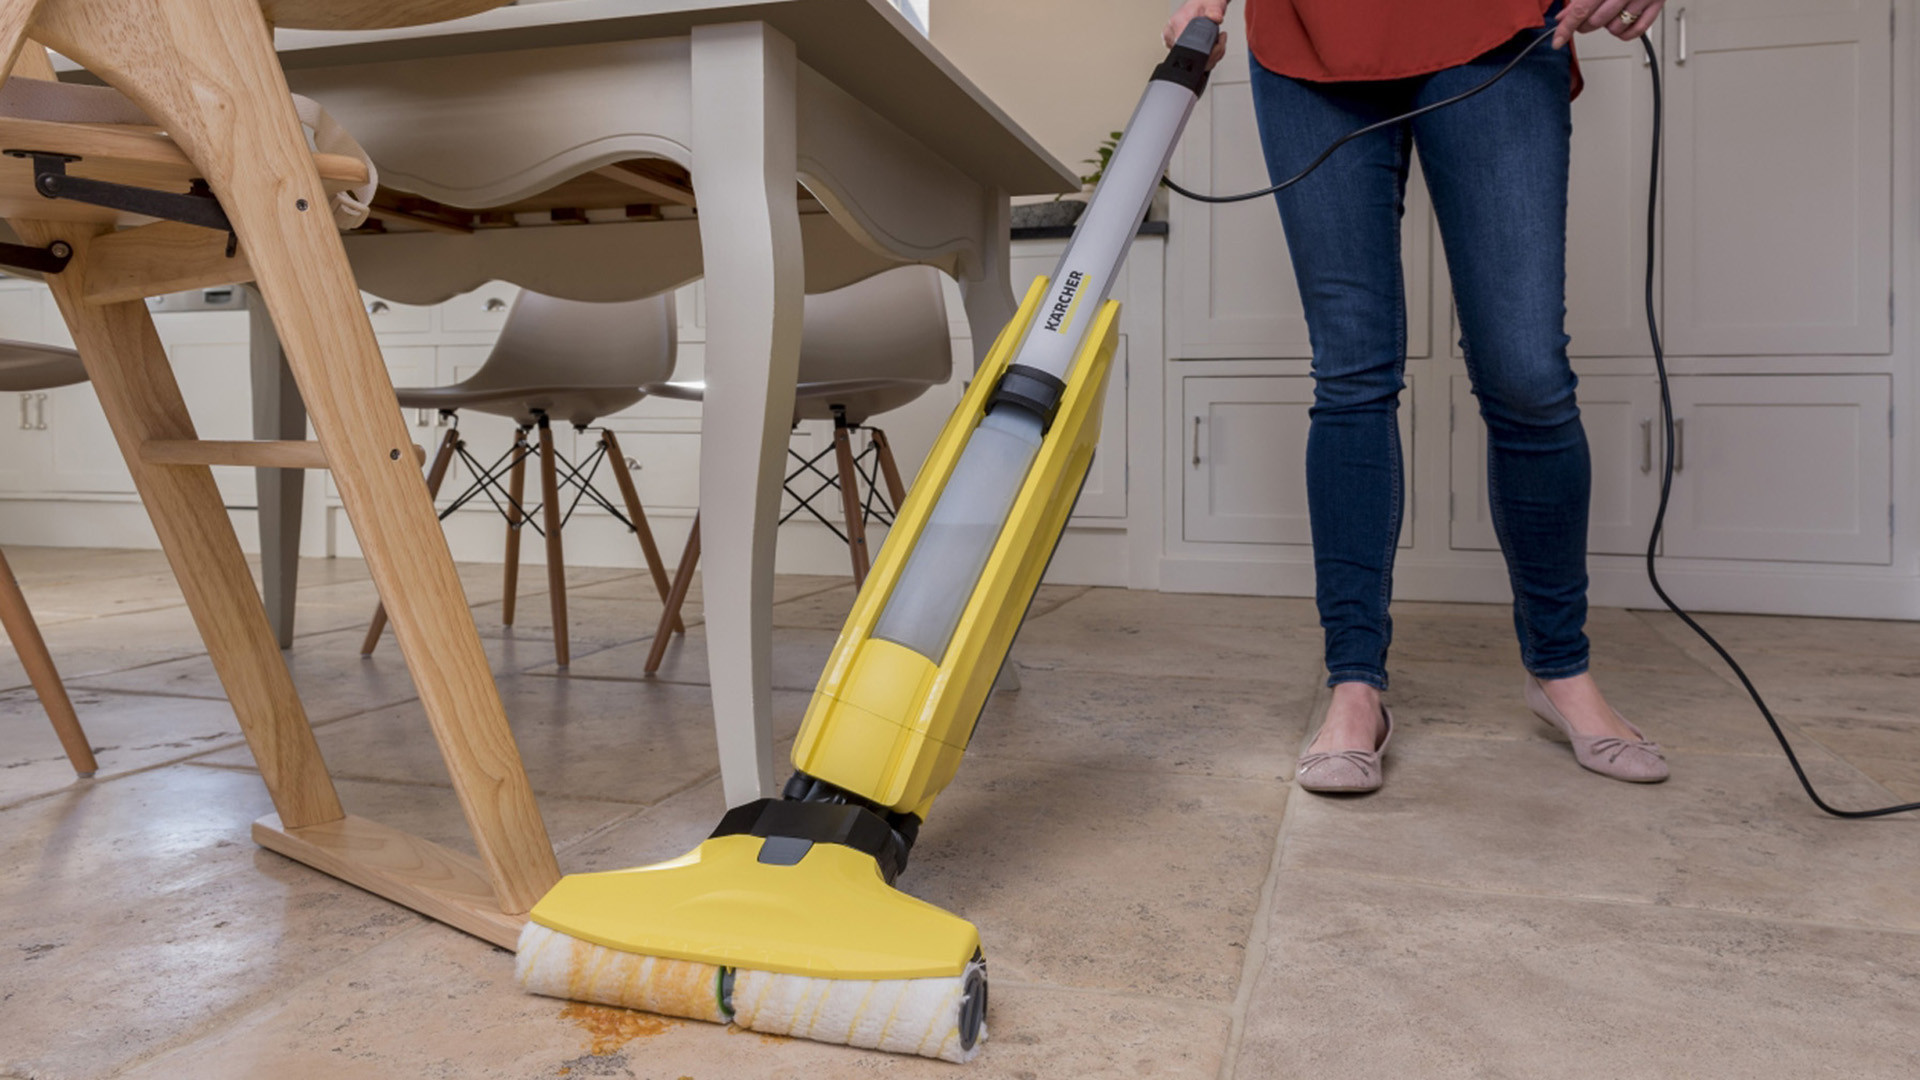 Best Cordless Vacuum for Pet Hair and Hardwood Floors Of Karcher Fc5 Hard Floor Cleaner Review Trusted Reviews In Karcher Fc5 5 1